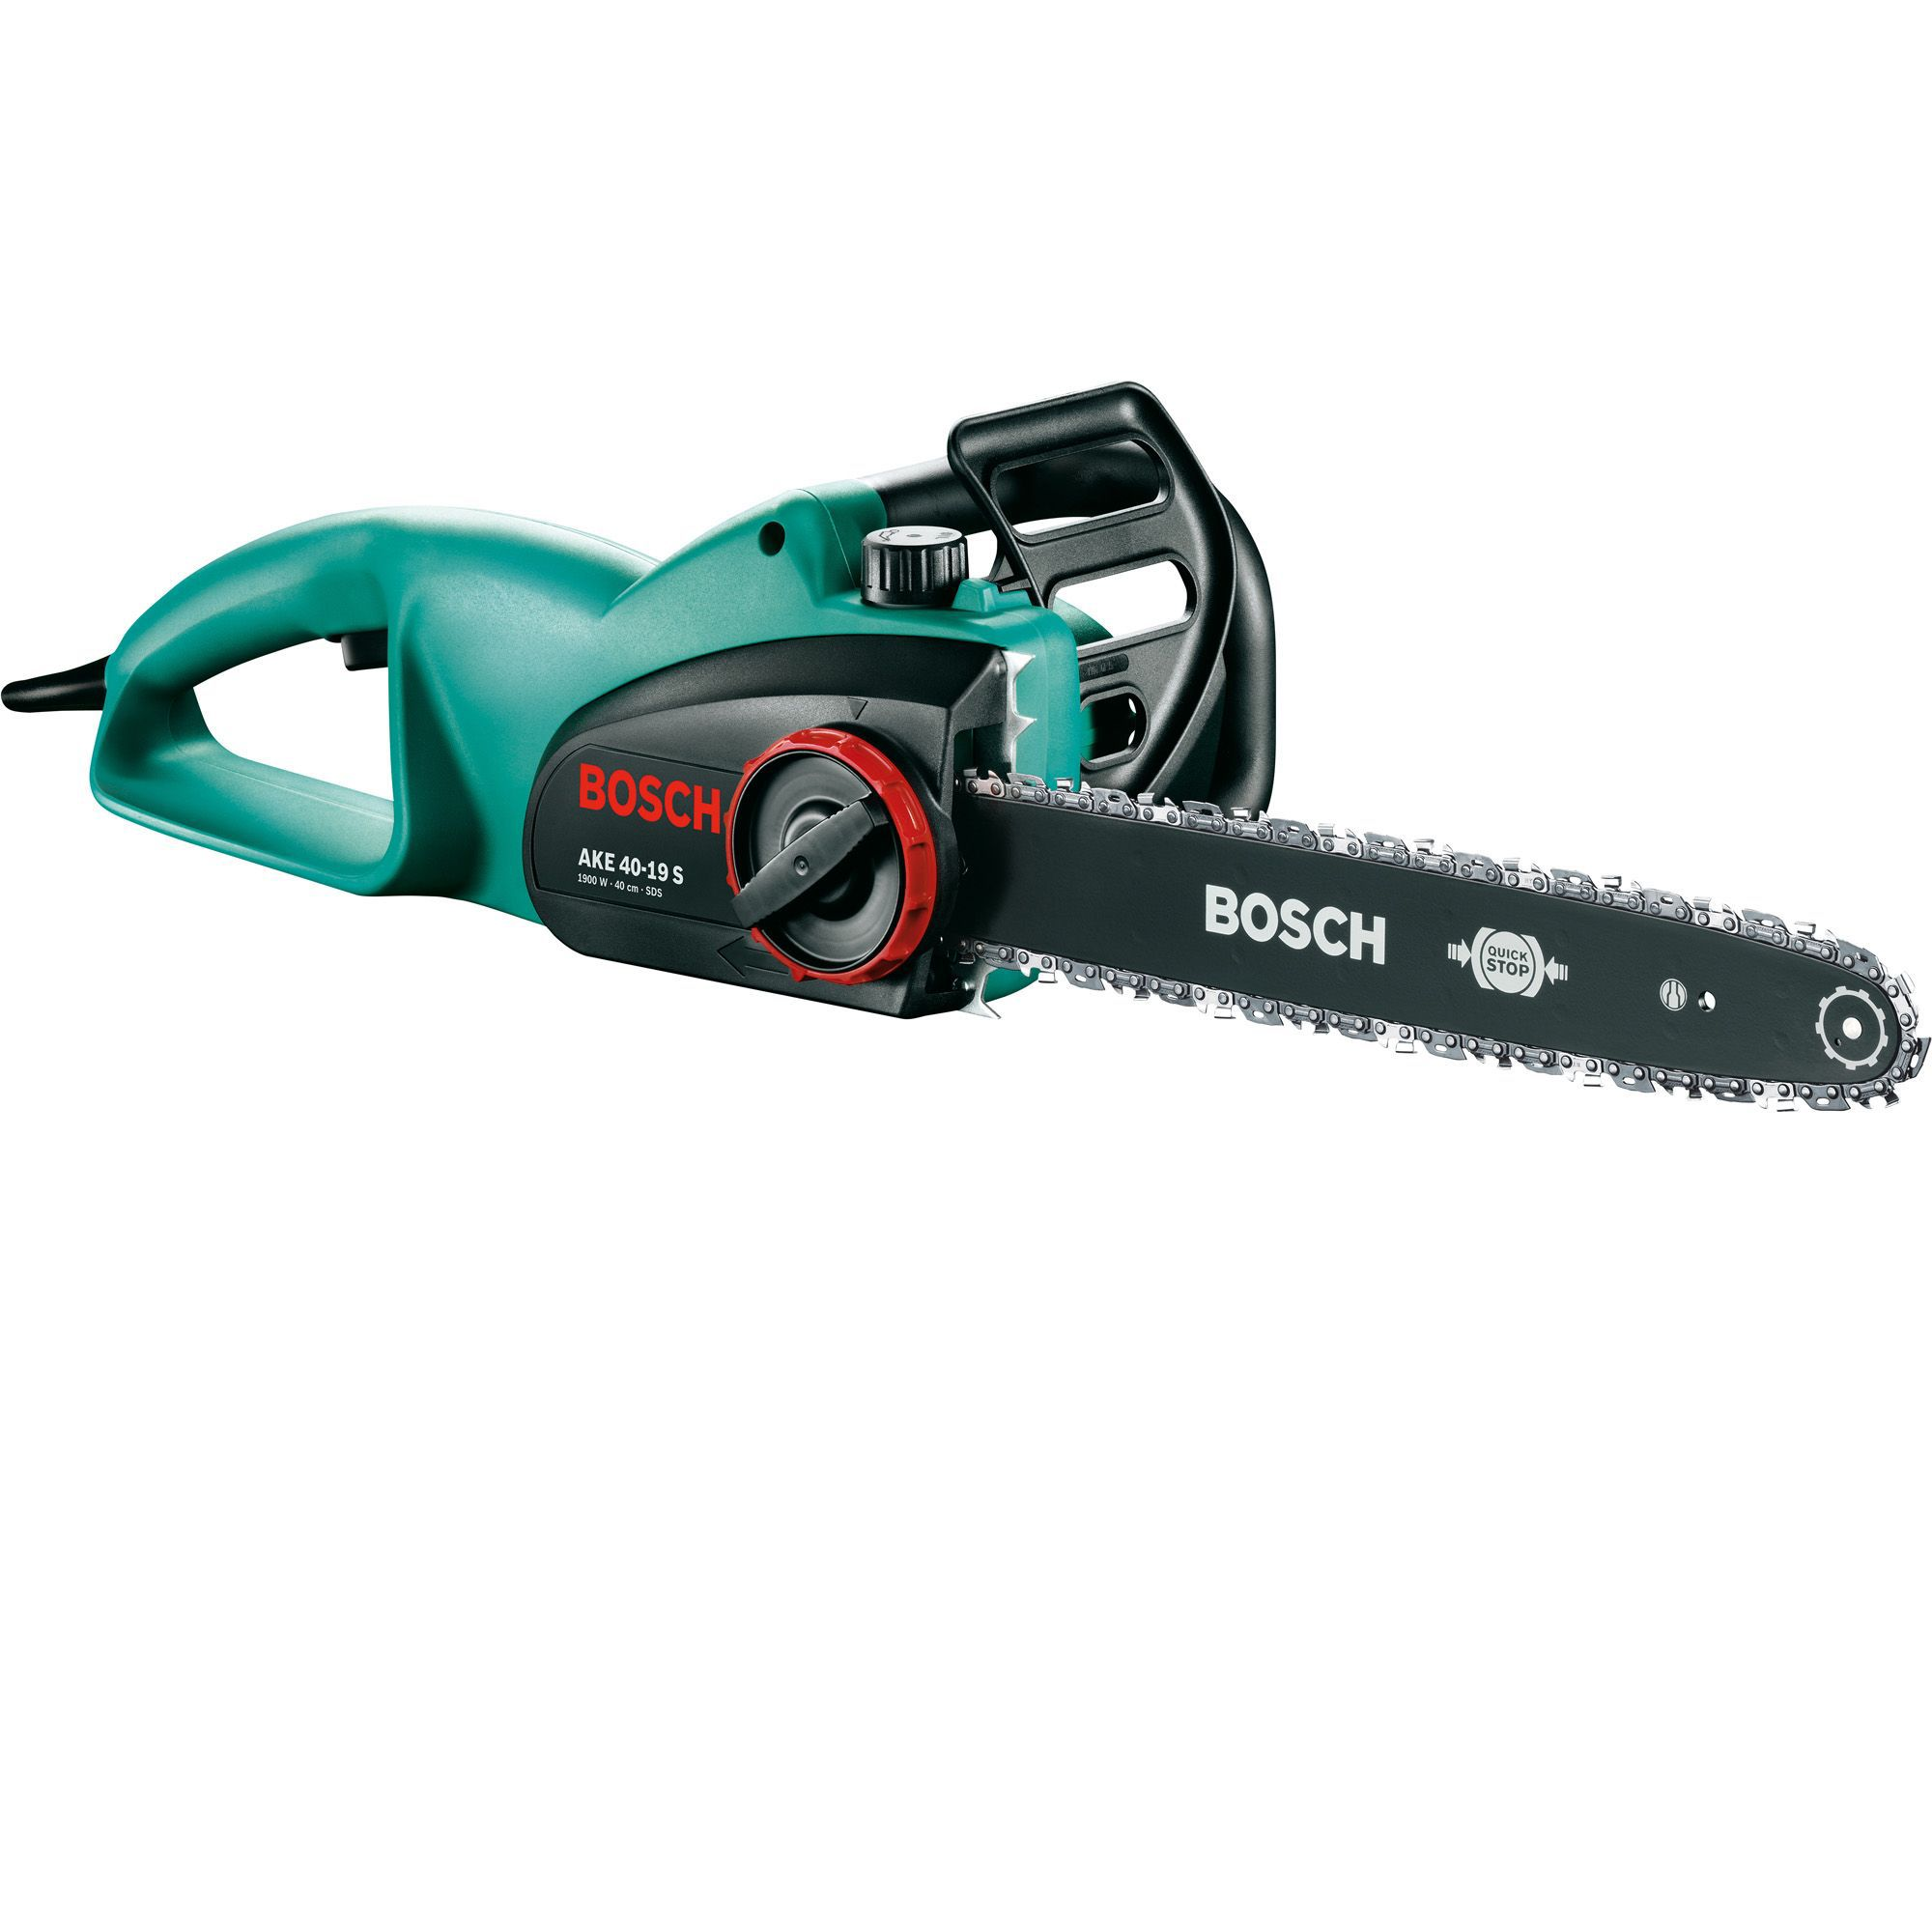 Bosch Ake 40-19 S Corded Electric Chainsaw